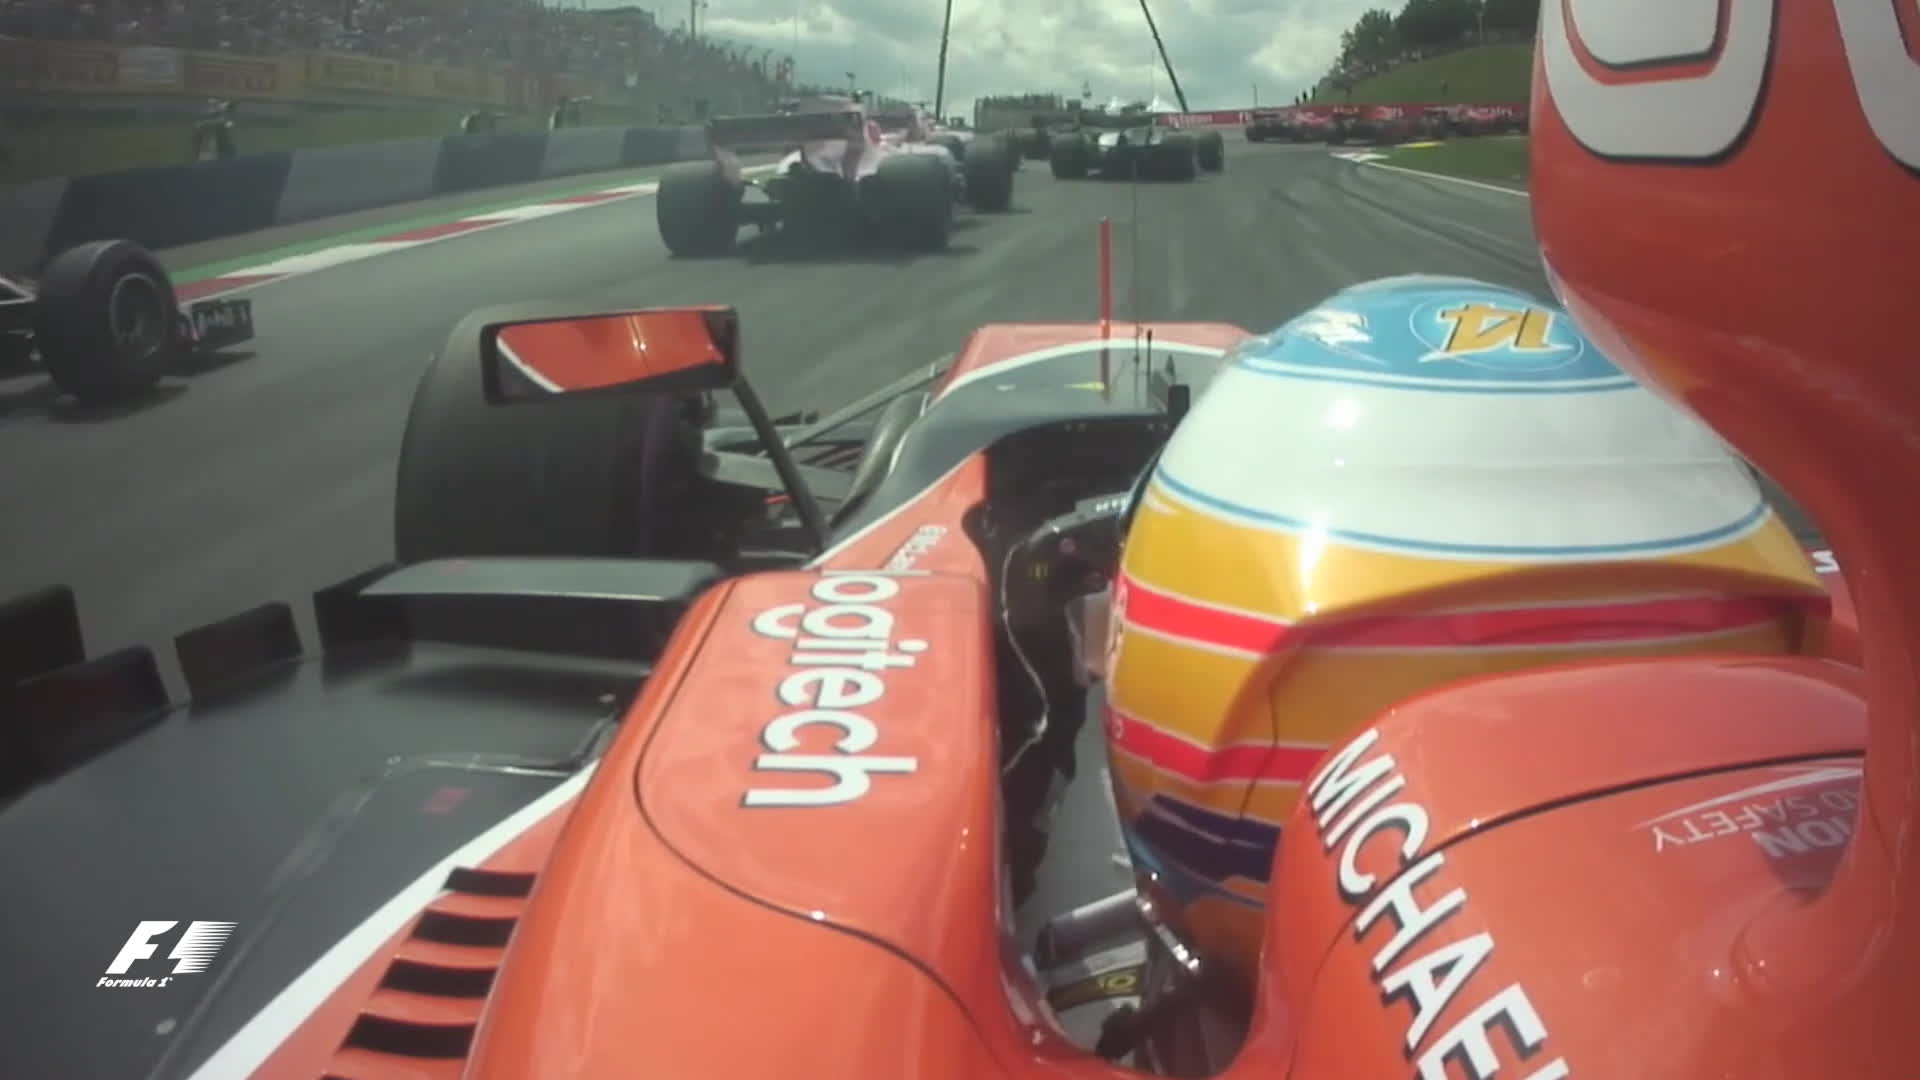 f1, formula 1, formula one, 2017 Austrian Grand Prix | Best Of Team Radio GIFs